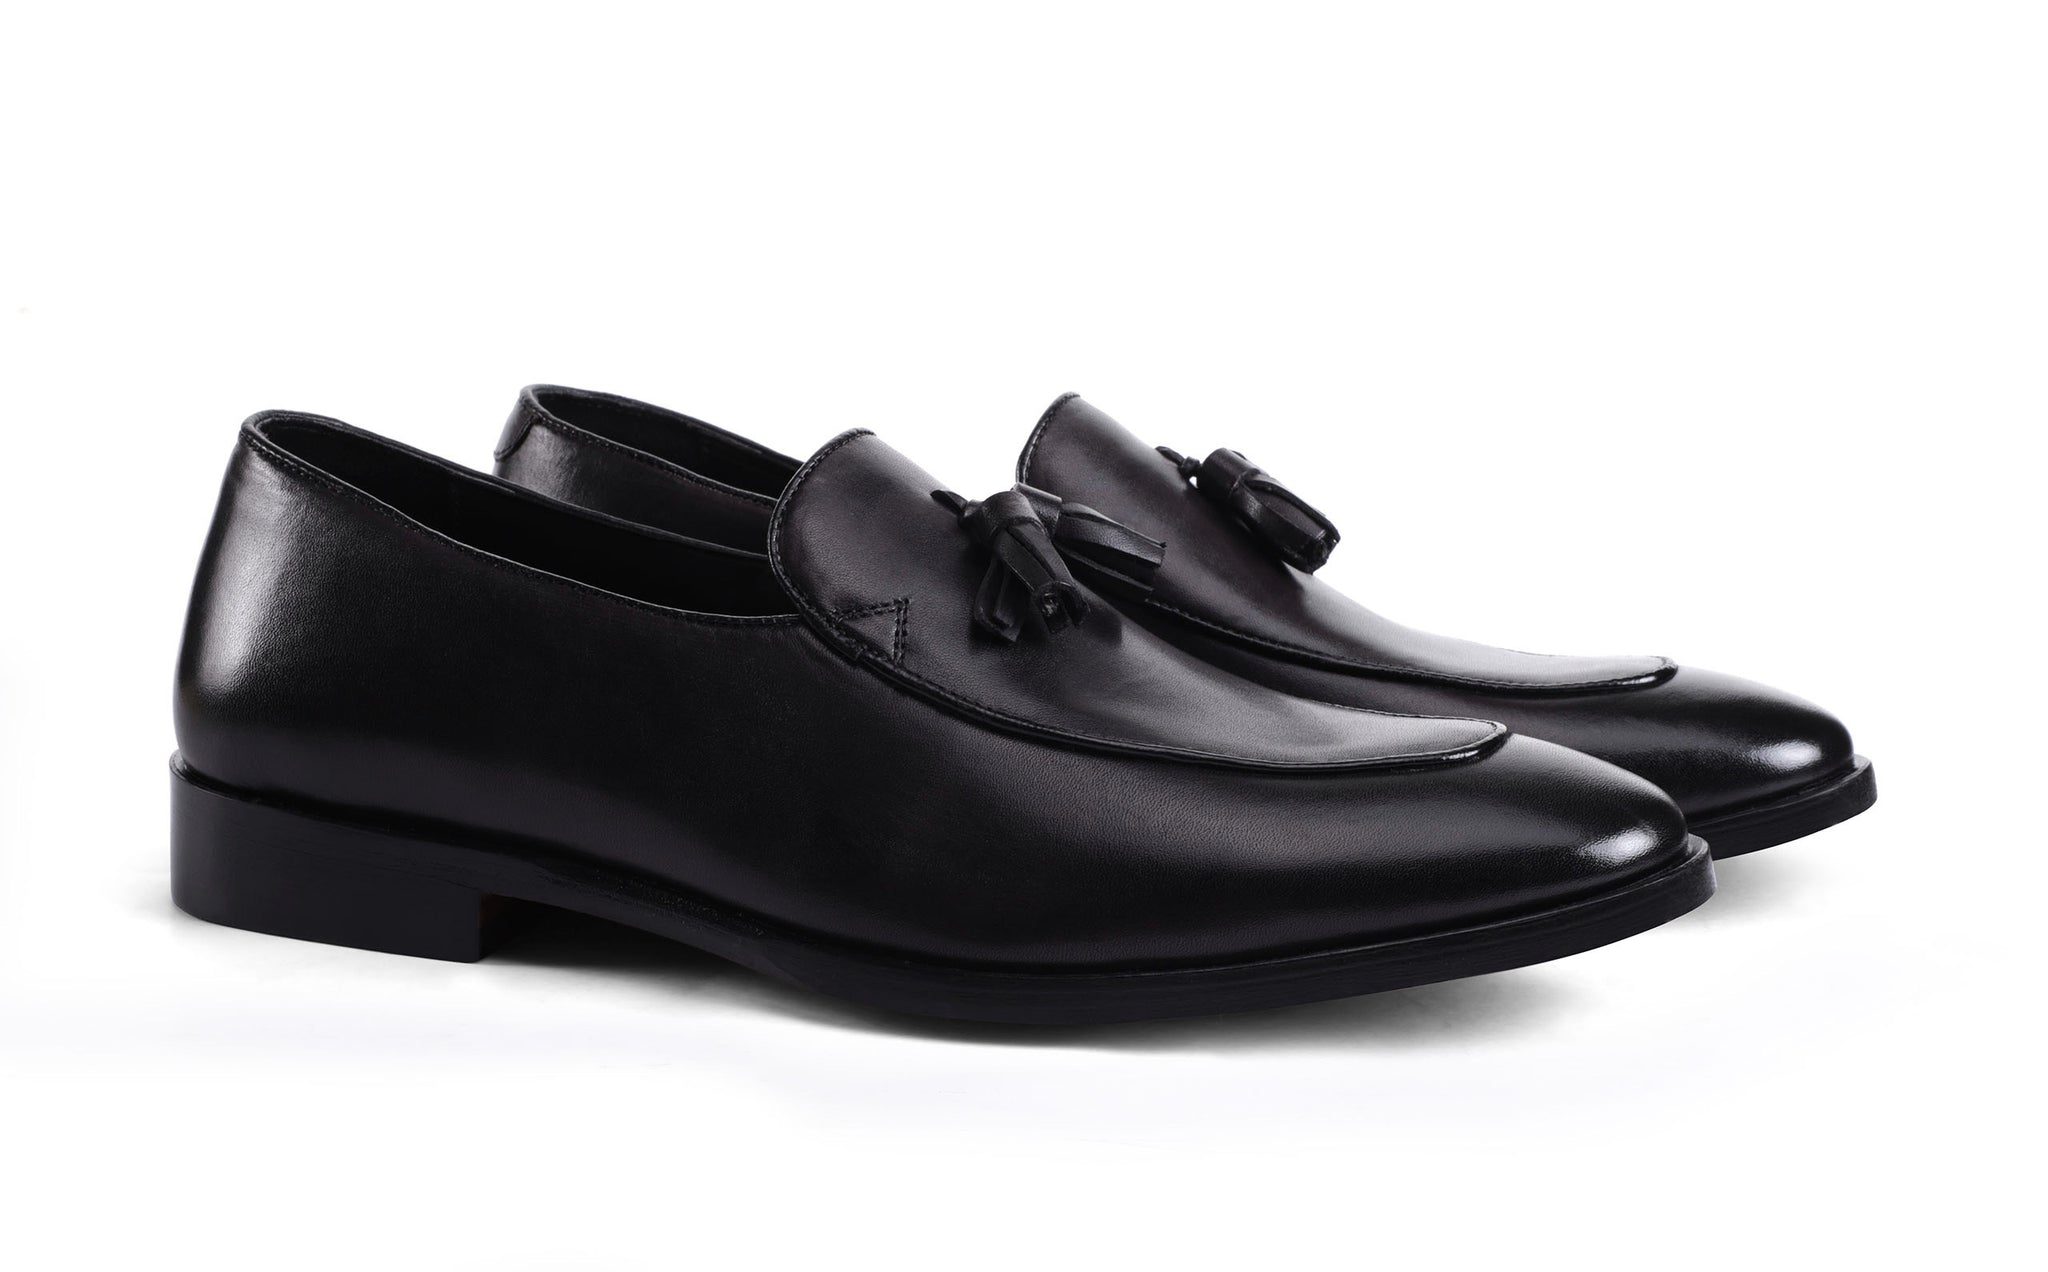 leather loafer shoes for mens